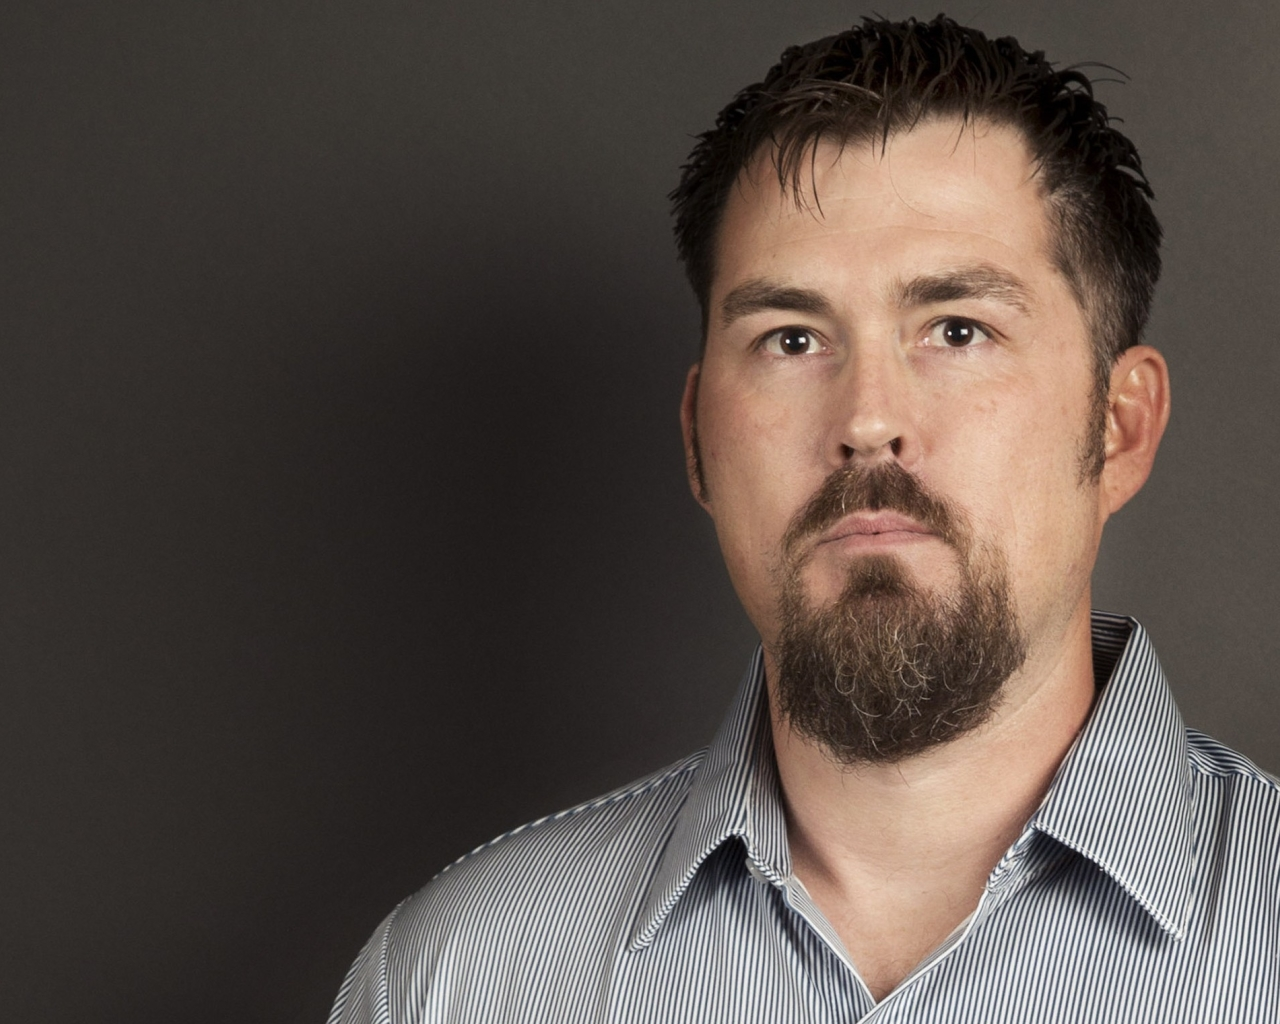 1280x1024 marcus luttrell, united states, navy seal